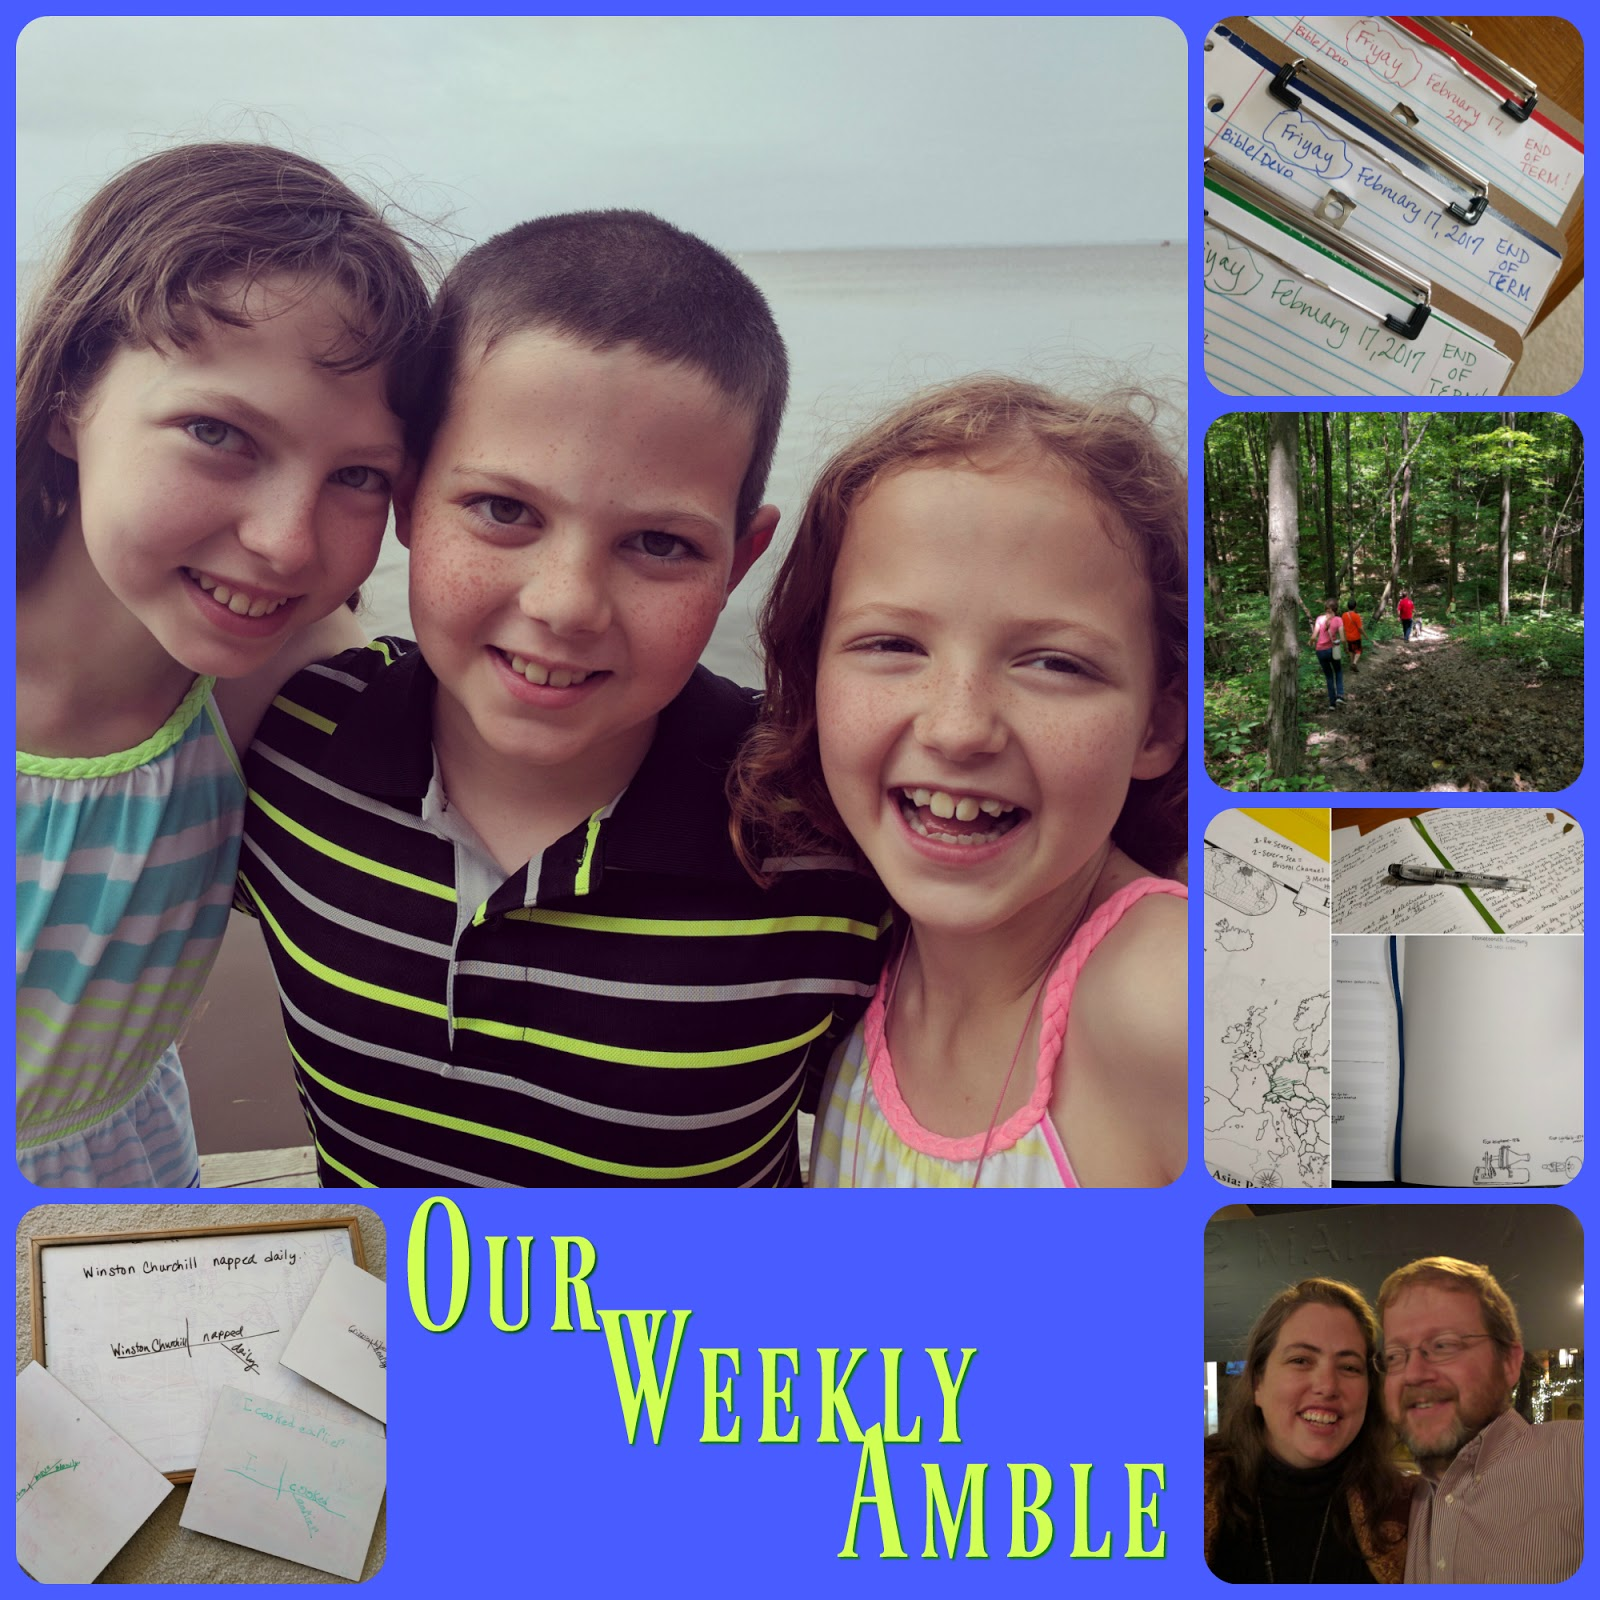 Our Weekly Amble for January 15-19, 2018